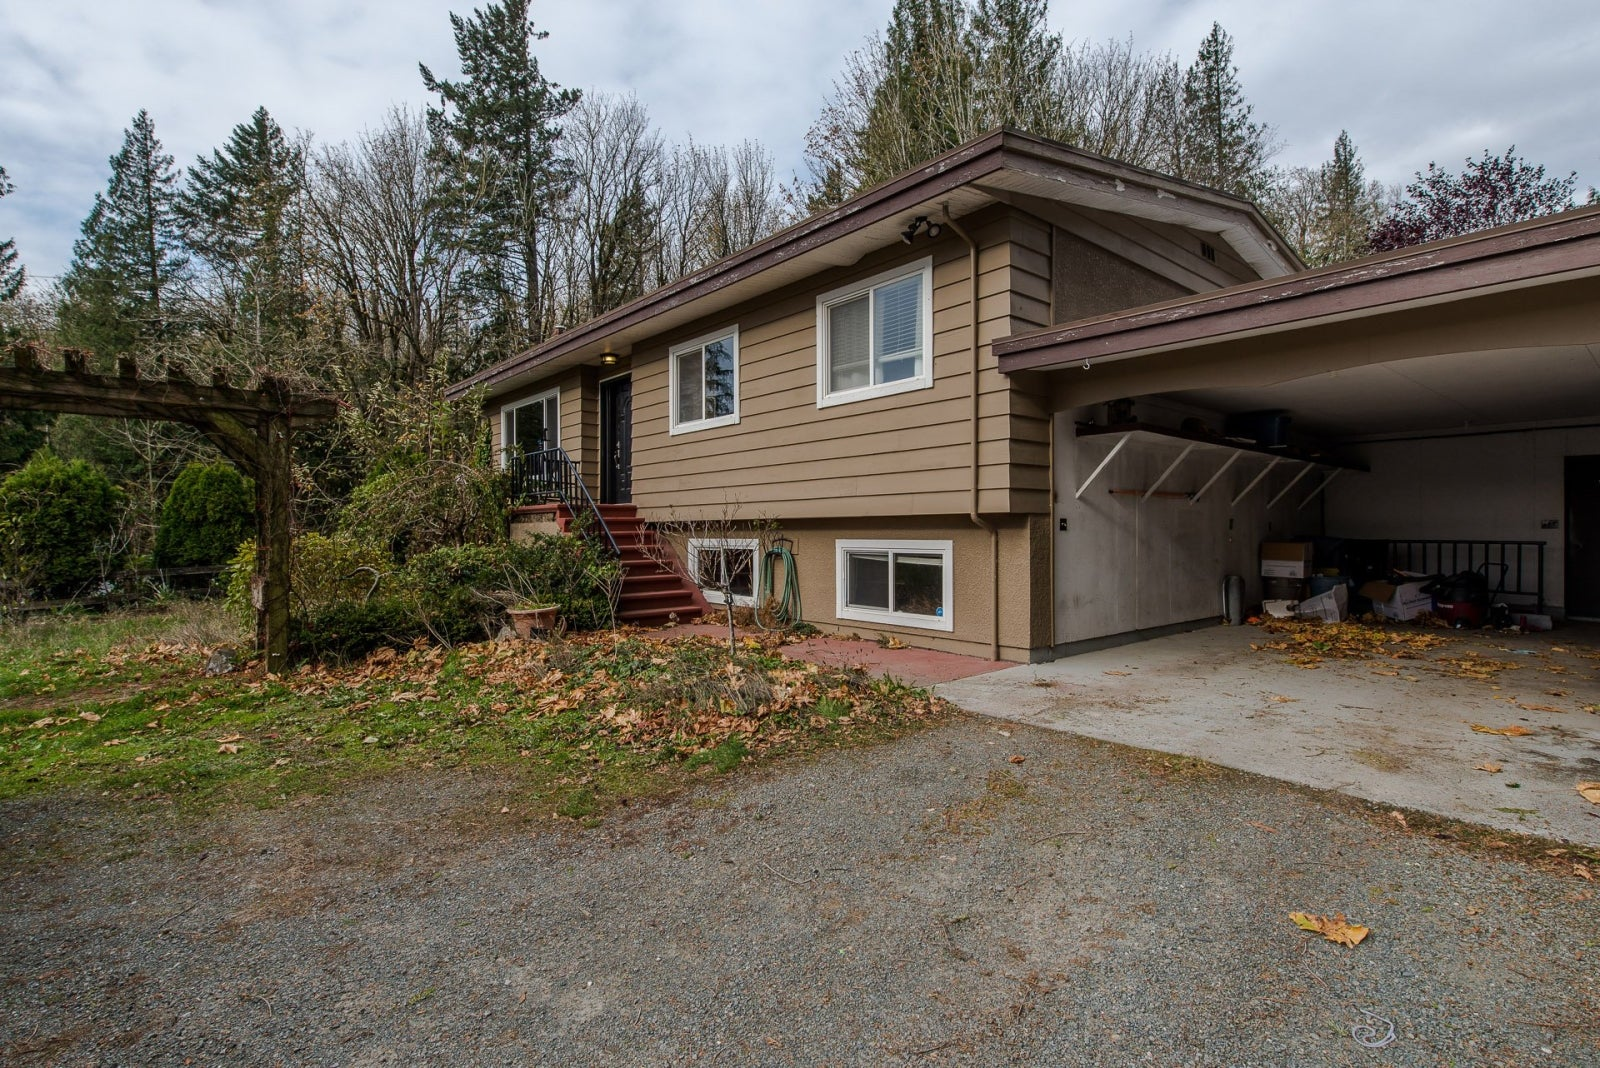 37471 ATKINSON ROAD - Sumas Mountain House with Acreage for sale, 3 Bedrooms (R2220193) #11